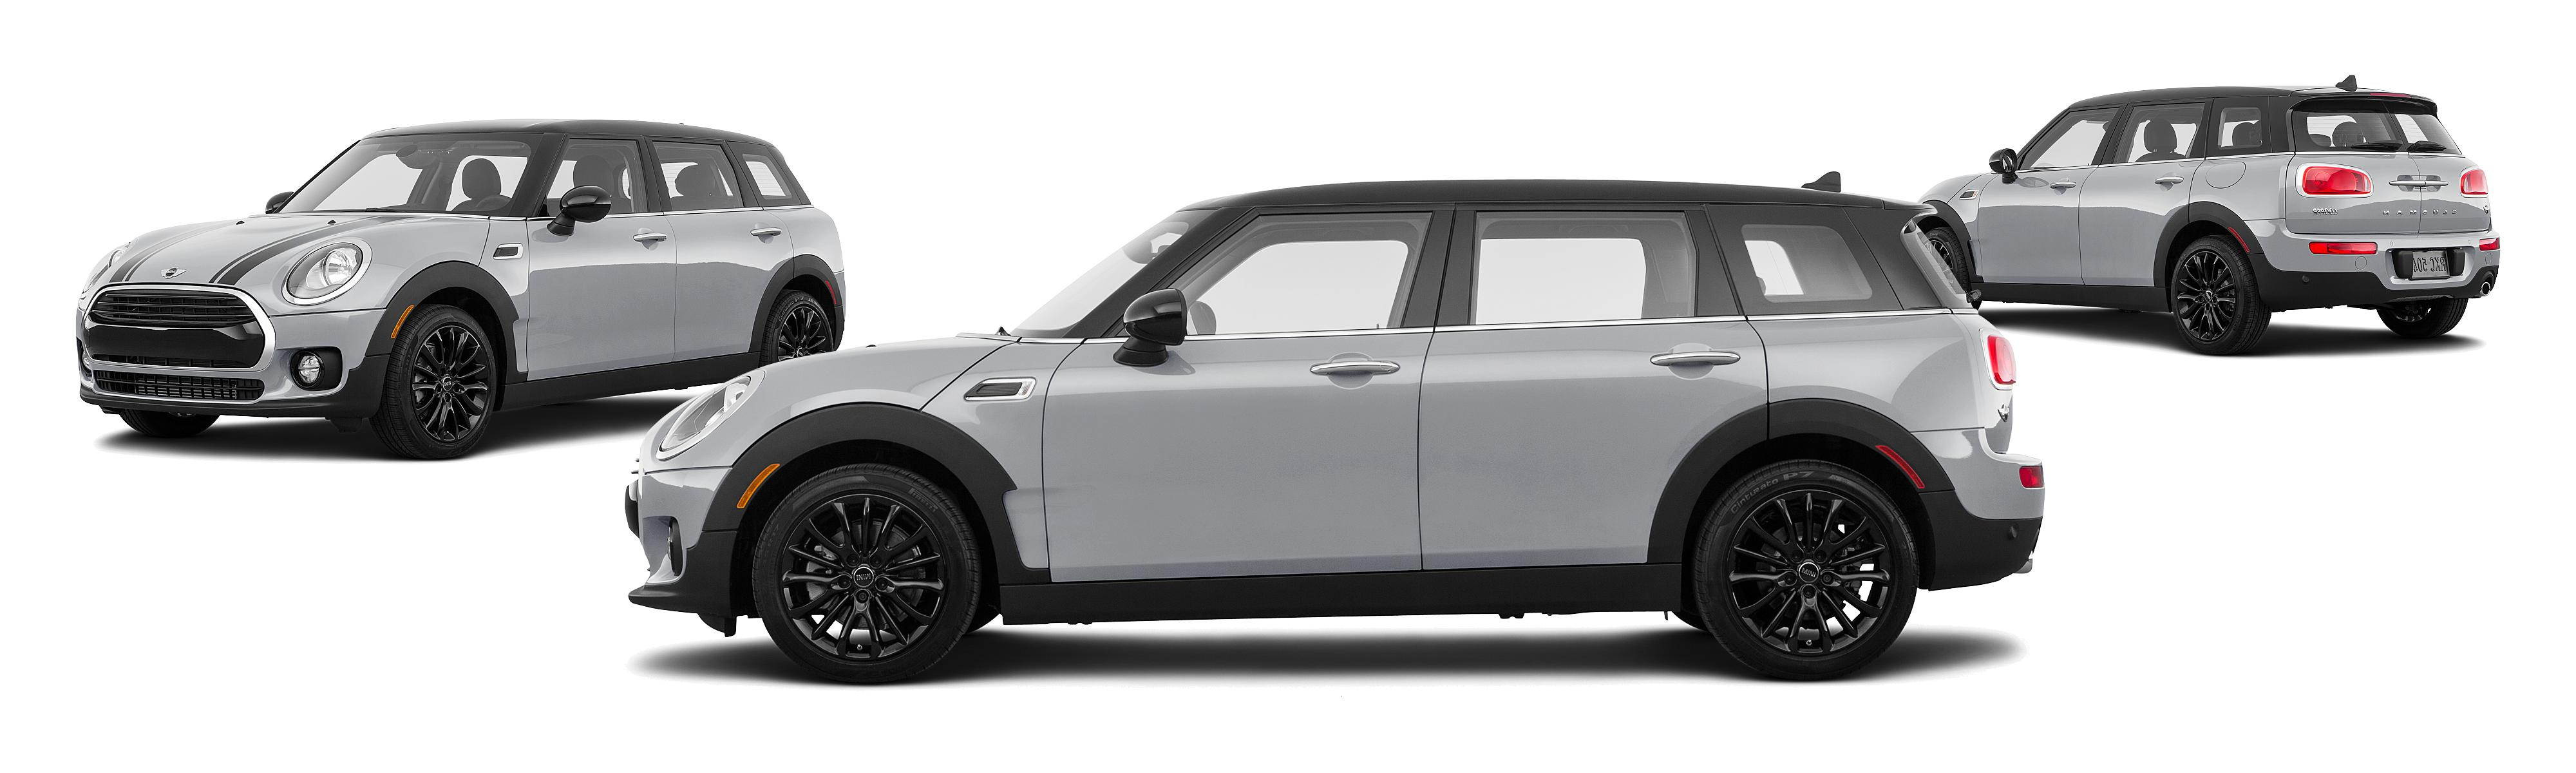 2017 Mini Clubman Cooper S 4dr Wagon Research Groovecar